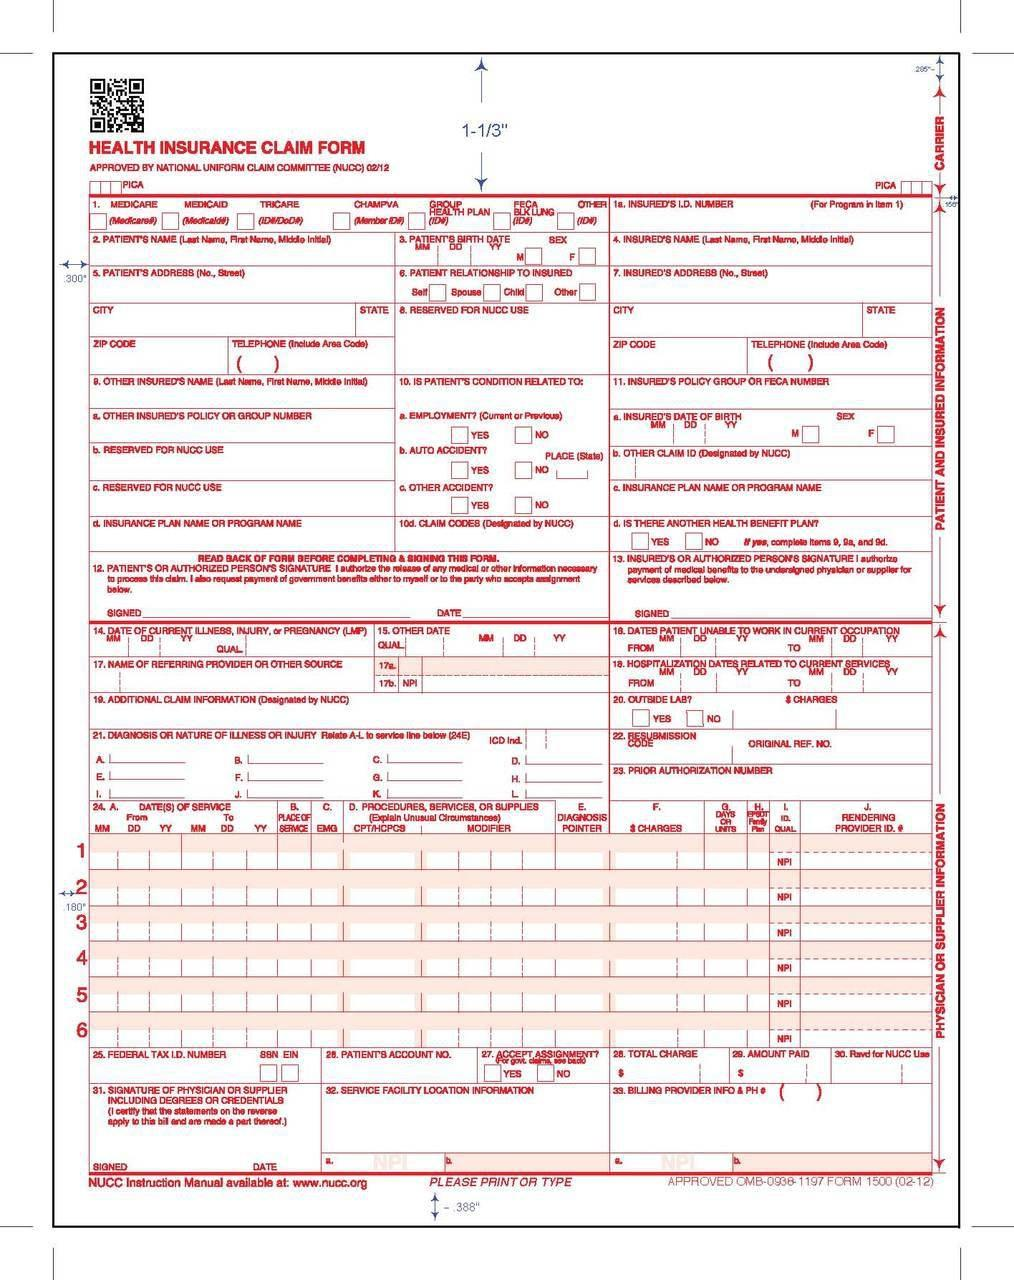 Cms 1500 Form Instructions 2018